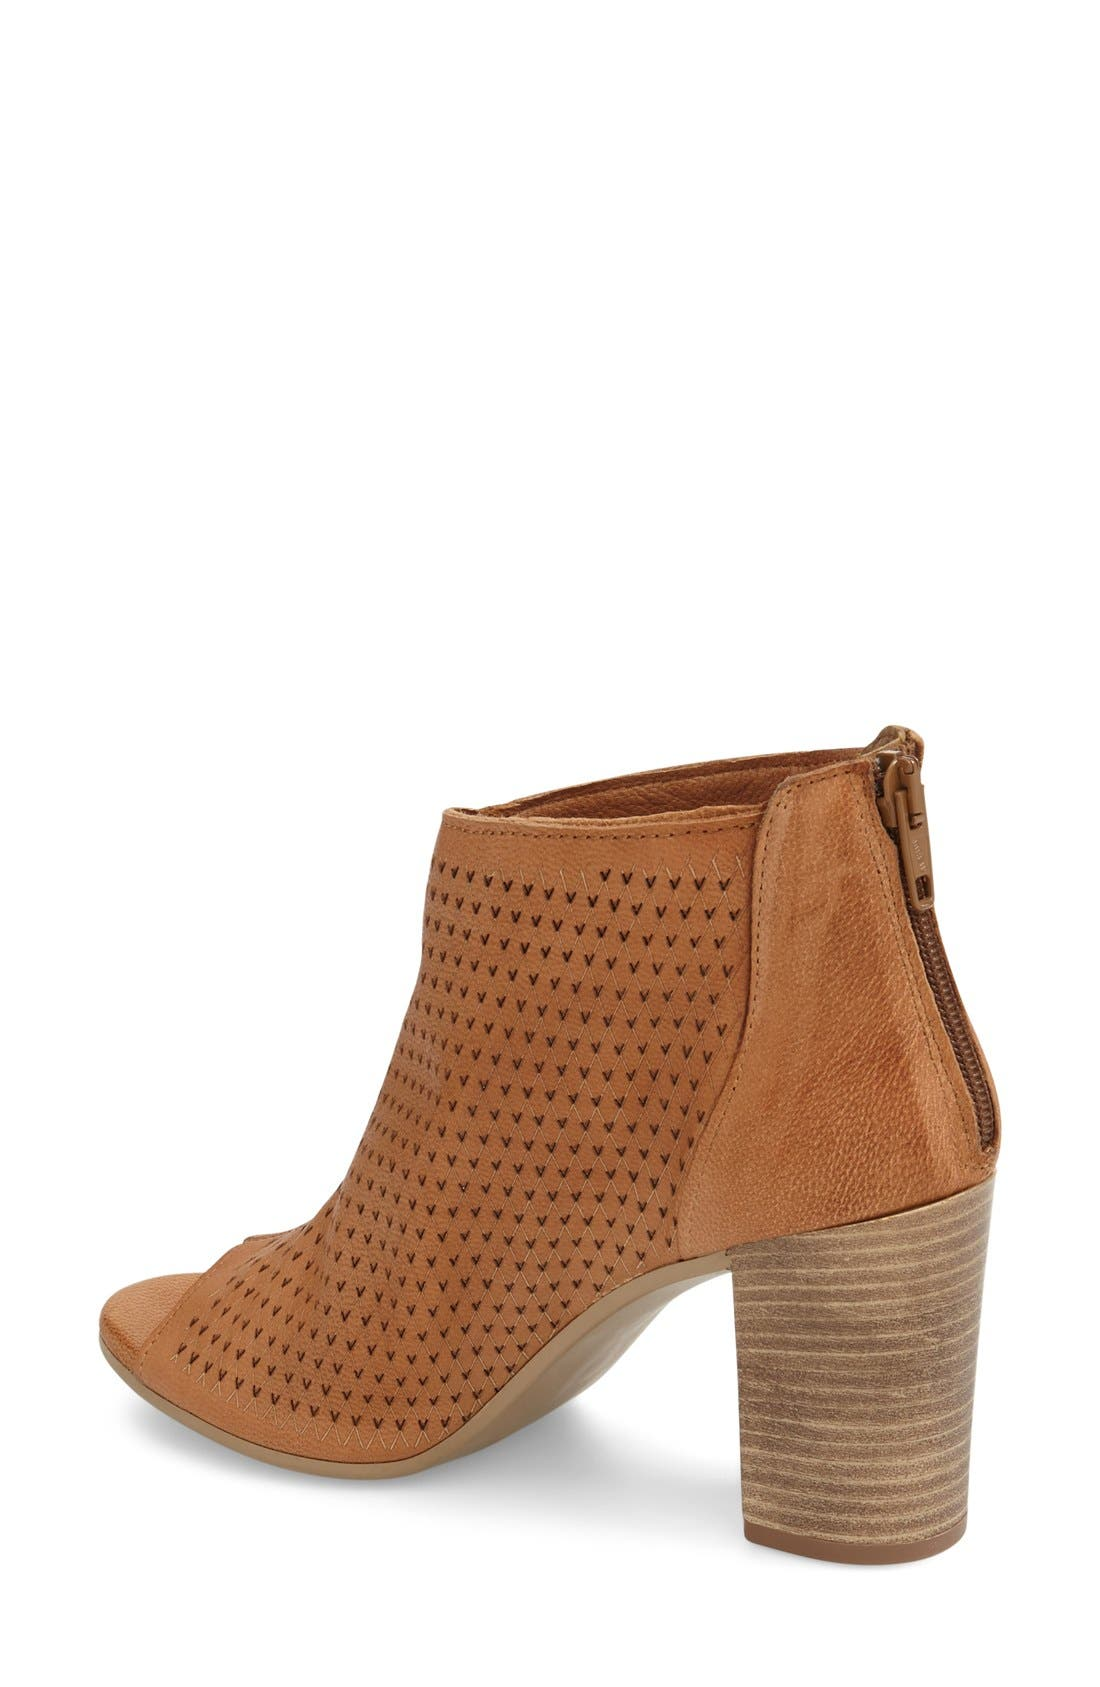 'Nina' Open Toe Bootie,                             Alternate thumbnail 2, color,                             Luggage Leather